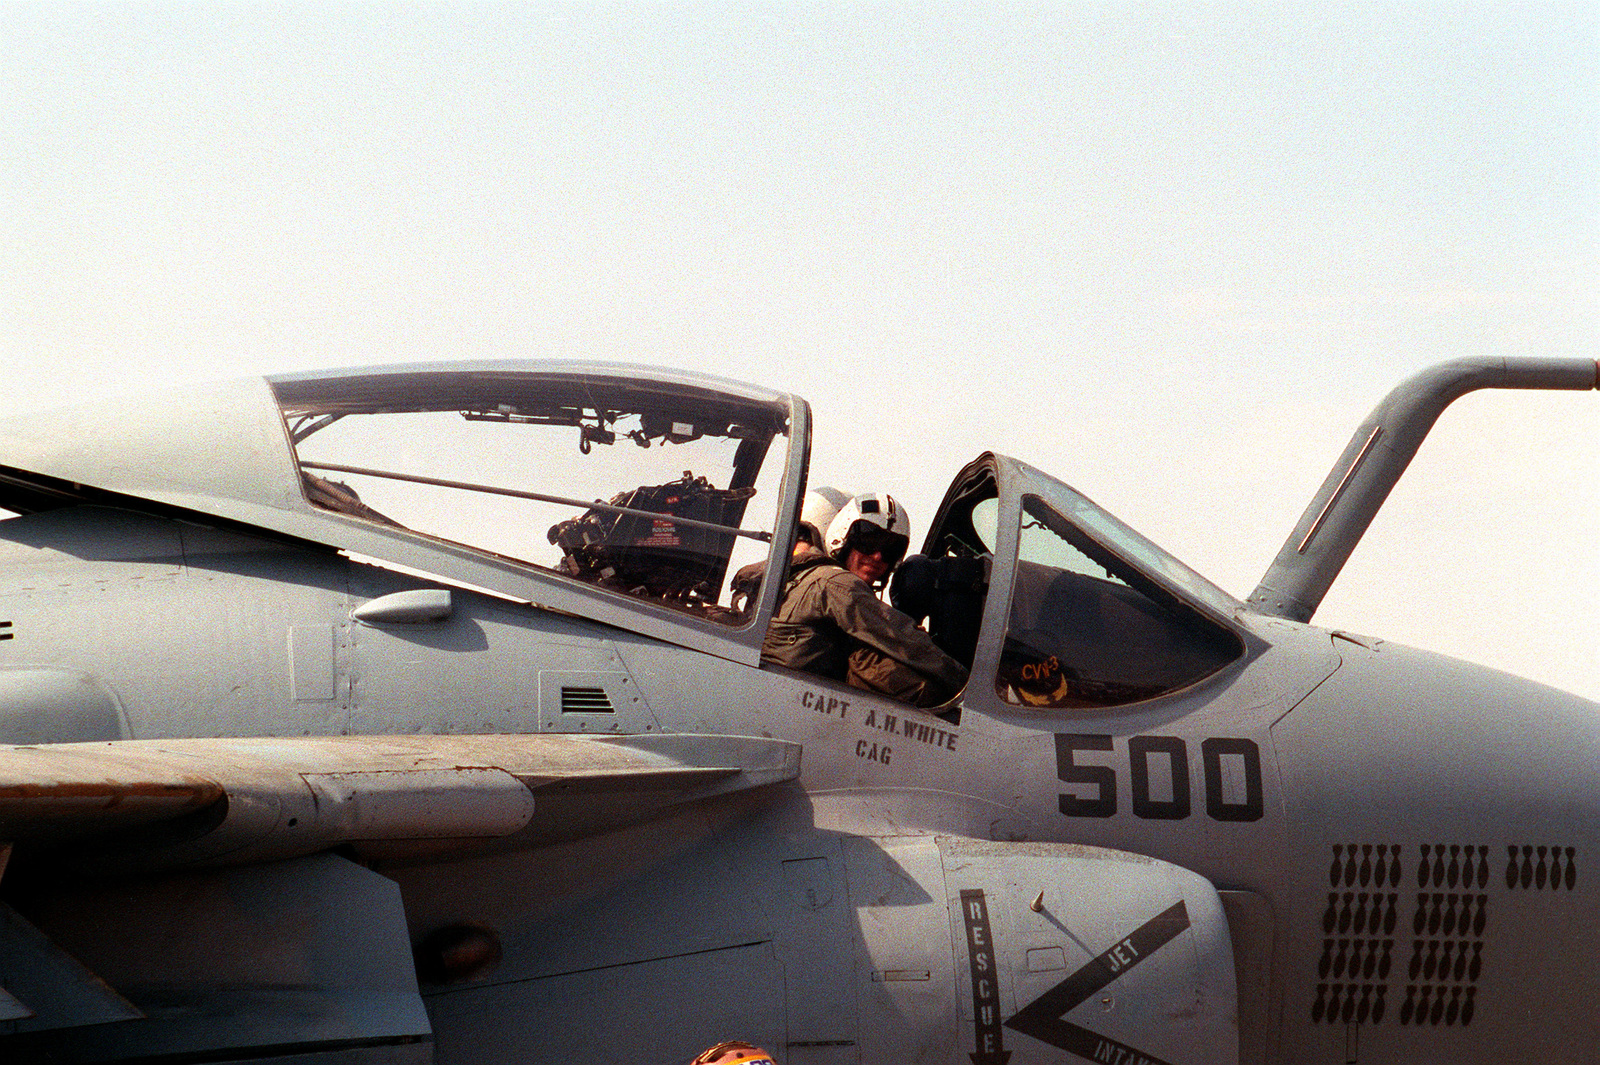 The A-6E Intruder aircraft of CAPT. A.H. White, commander, Carrier Air Wing 3 (CVW-3), arrives on base along with other aircraft from CVW-3 and CVW-17. Military personnel from both wings are returning home after serving in the Persian Gulf during Operation Desert Storm